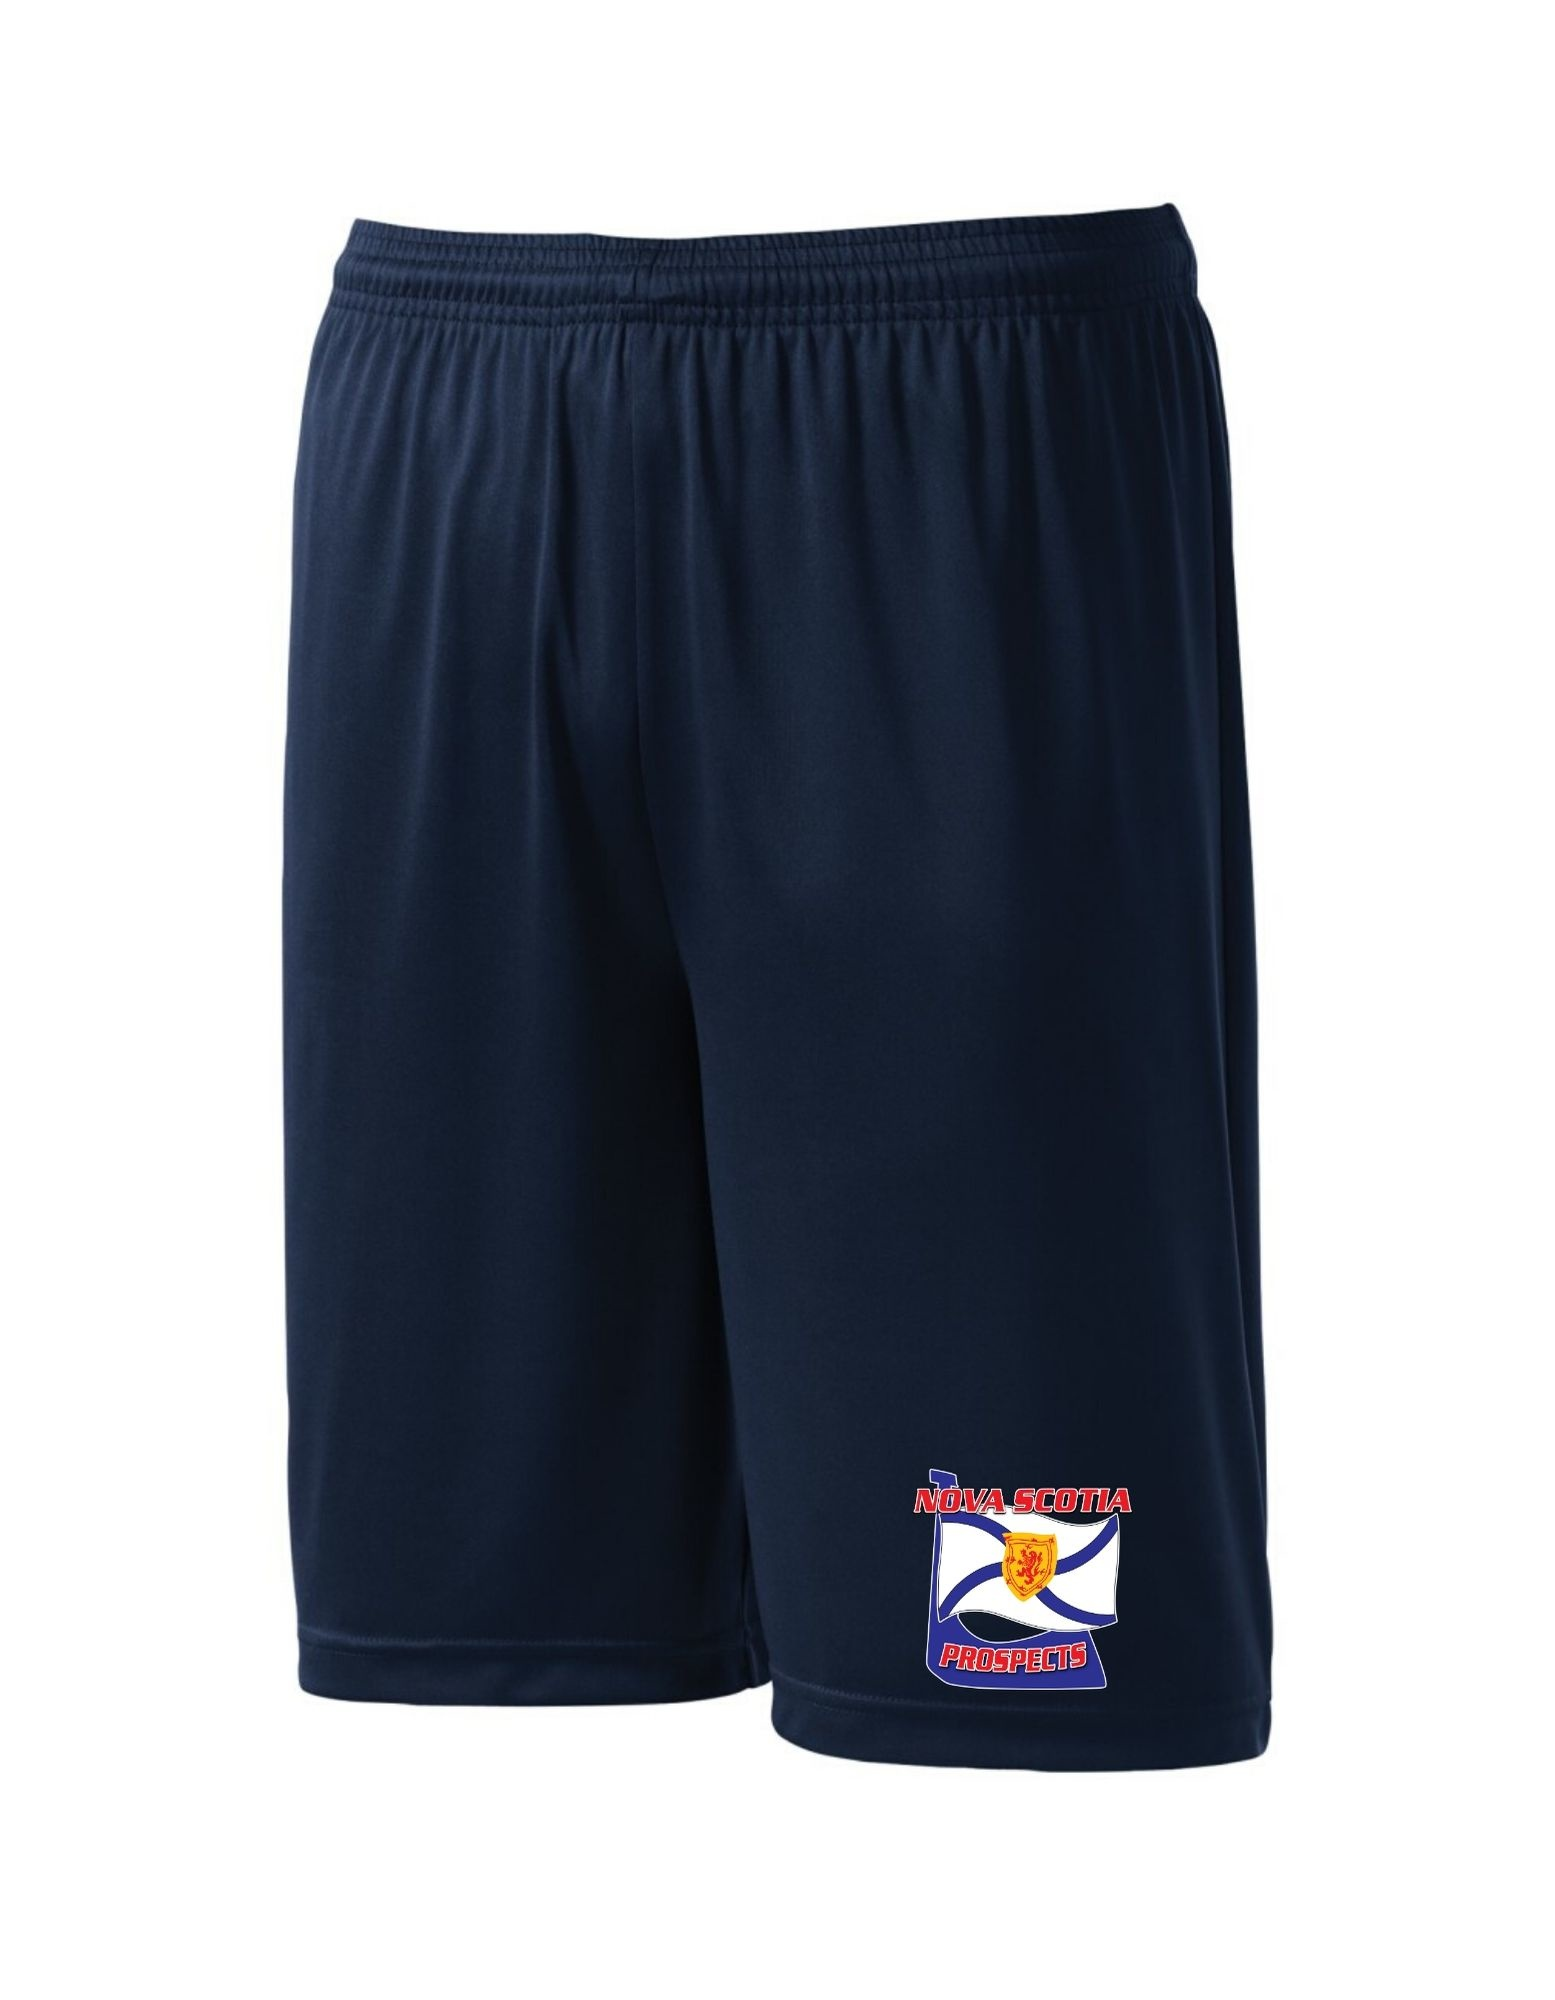 ATC NS PROSPECTS DRY-FIT SHORTS